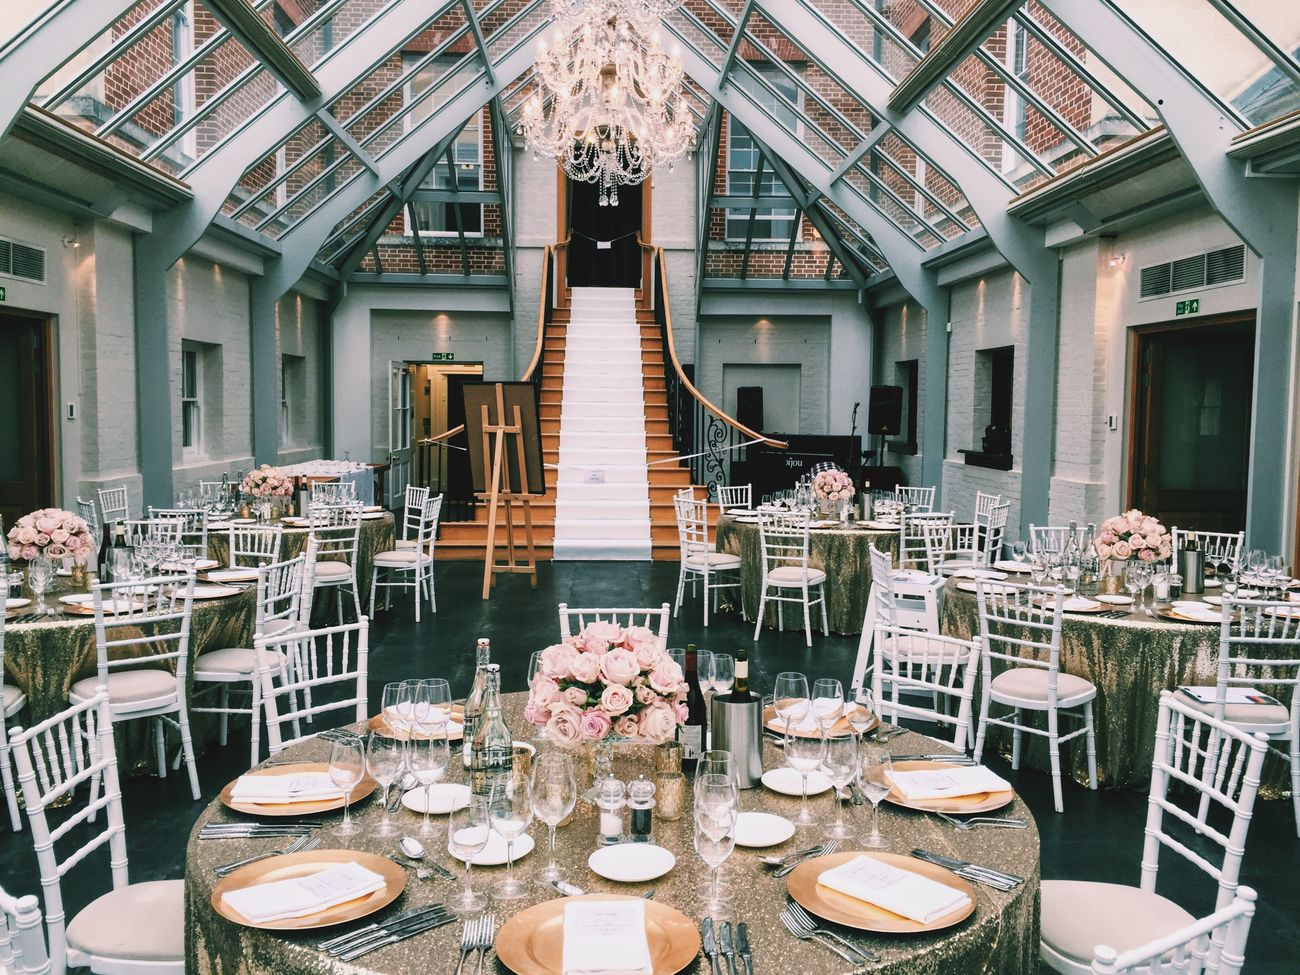 So many wedding venues this year. Wedding Lifestyles Vscocam Check This Out Vscogood Taking Photos EyeEm Gallery EyeEm Photooftheday England Majestic Eye4photography